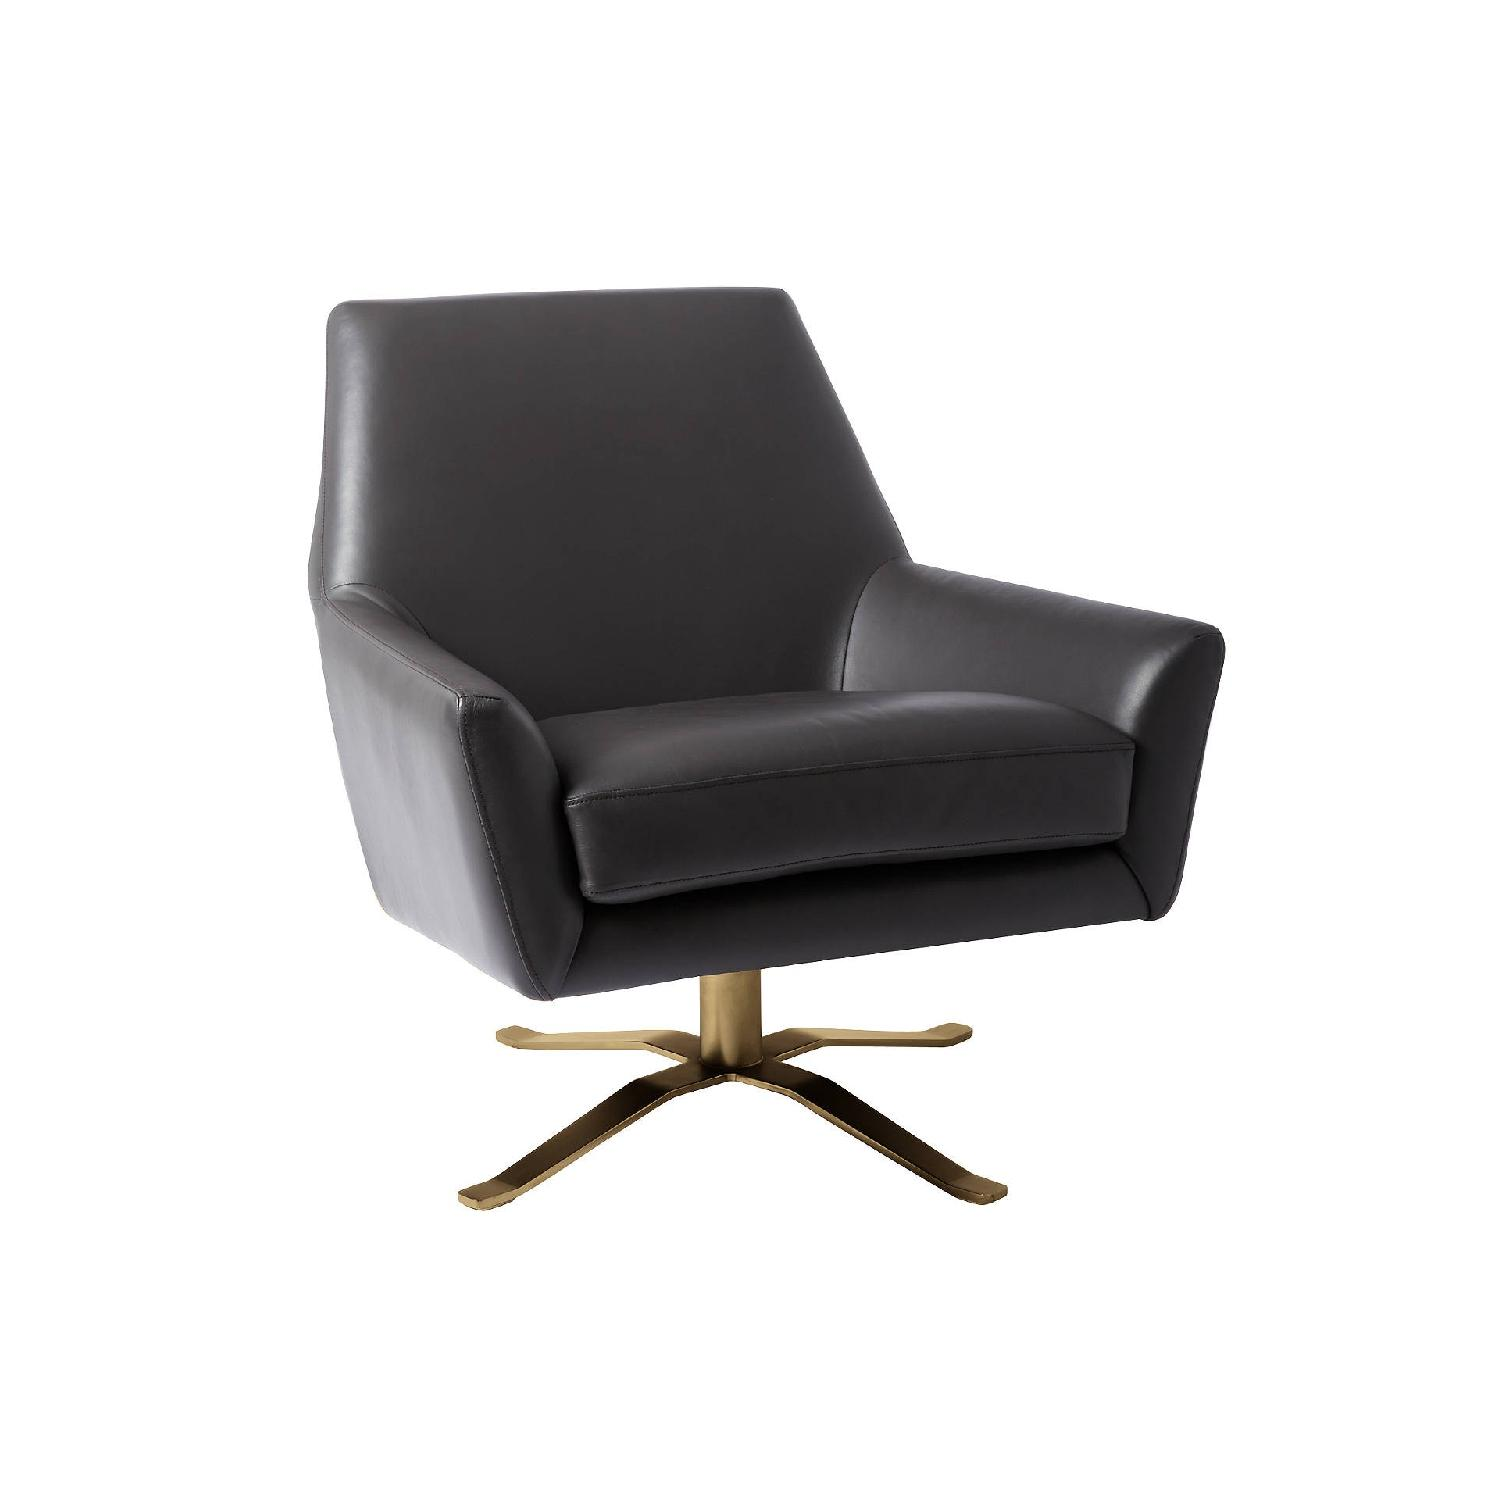 West Elm Lucas Dark Grey Swivel Base Chair w/ Brass Legs